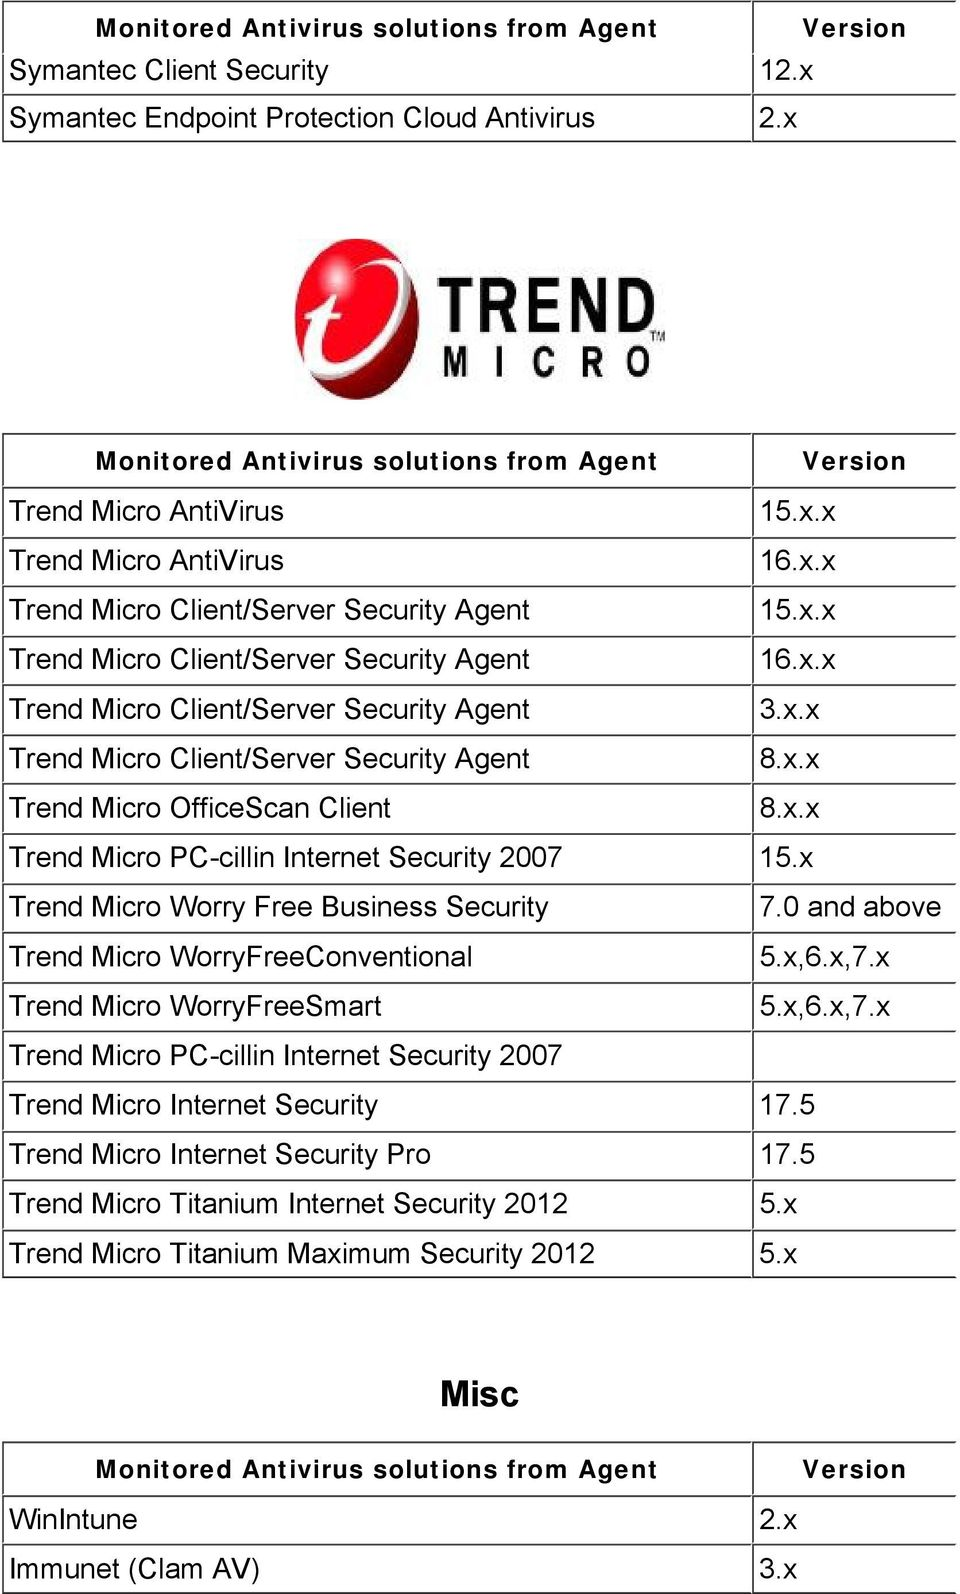 x Trend Micro Worry Free Business Security 7.0 and above Trend Micro WorryFreeConventional 5.x,6.x,7.x Trend Micro WorryFreeSmart 5.x,6.x,7.x Trend Micro PC-cillin Internet Security 2007 Trend Micro Internet Security 17.